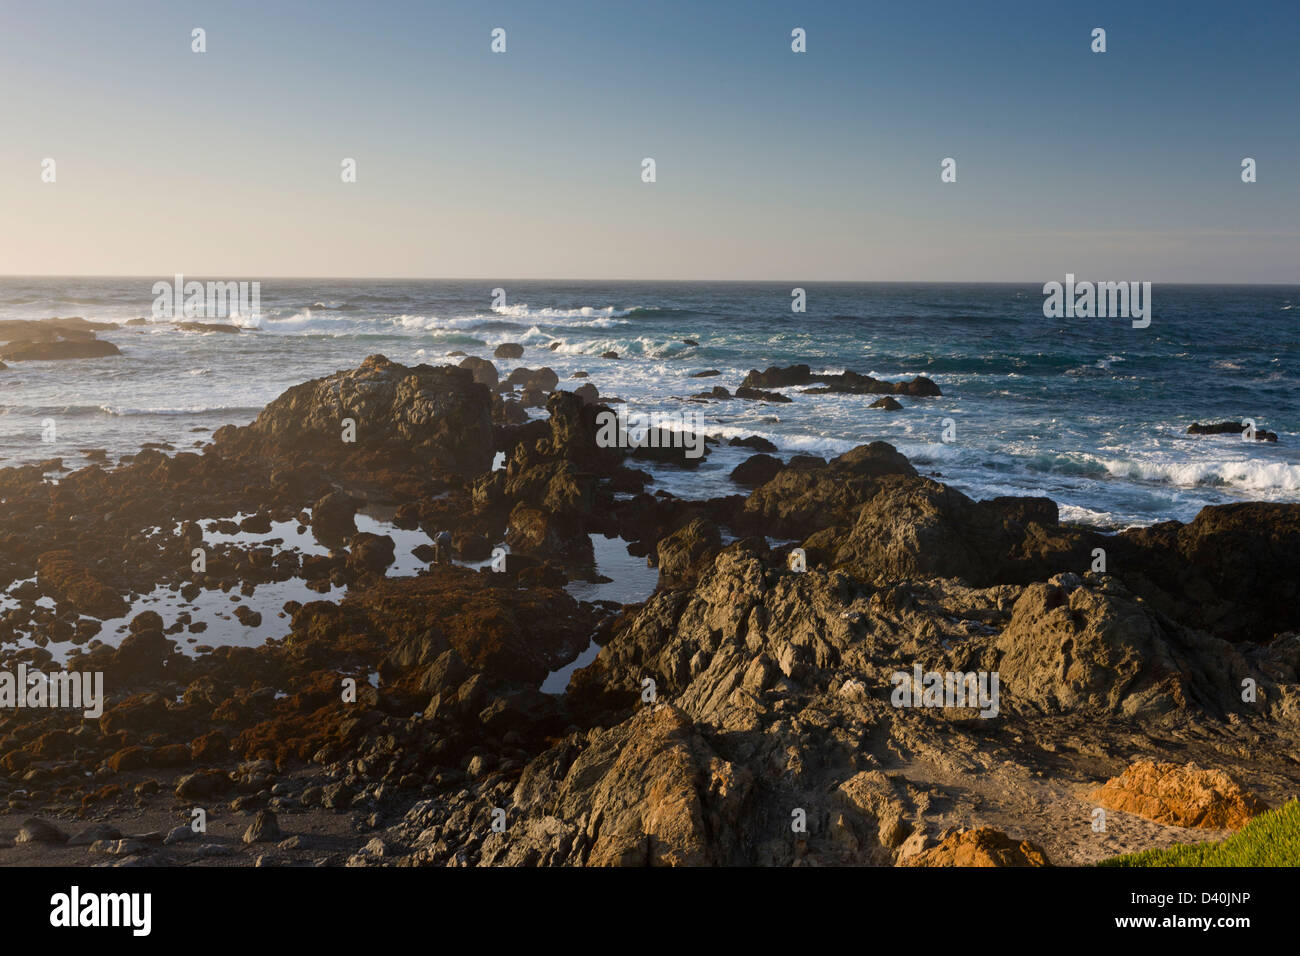 Rocky promontory with tidepools on the North California coast at MacKerricher State Park, California, USA - Stock Image